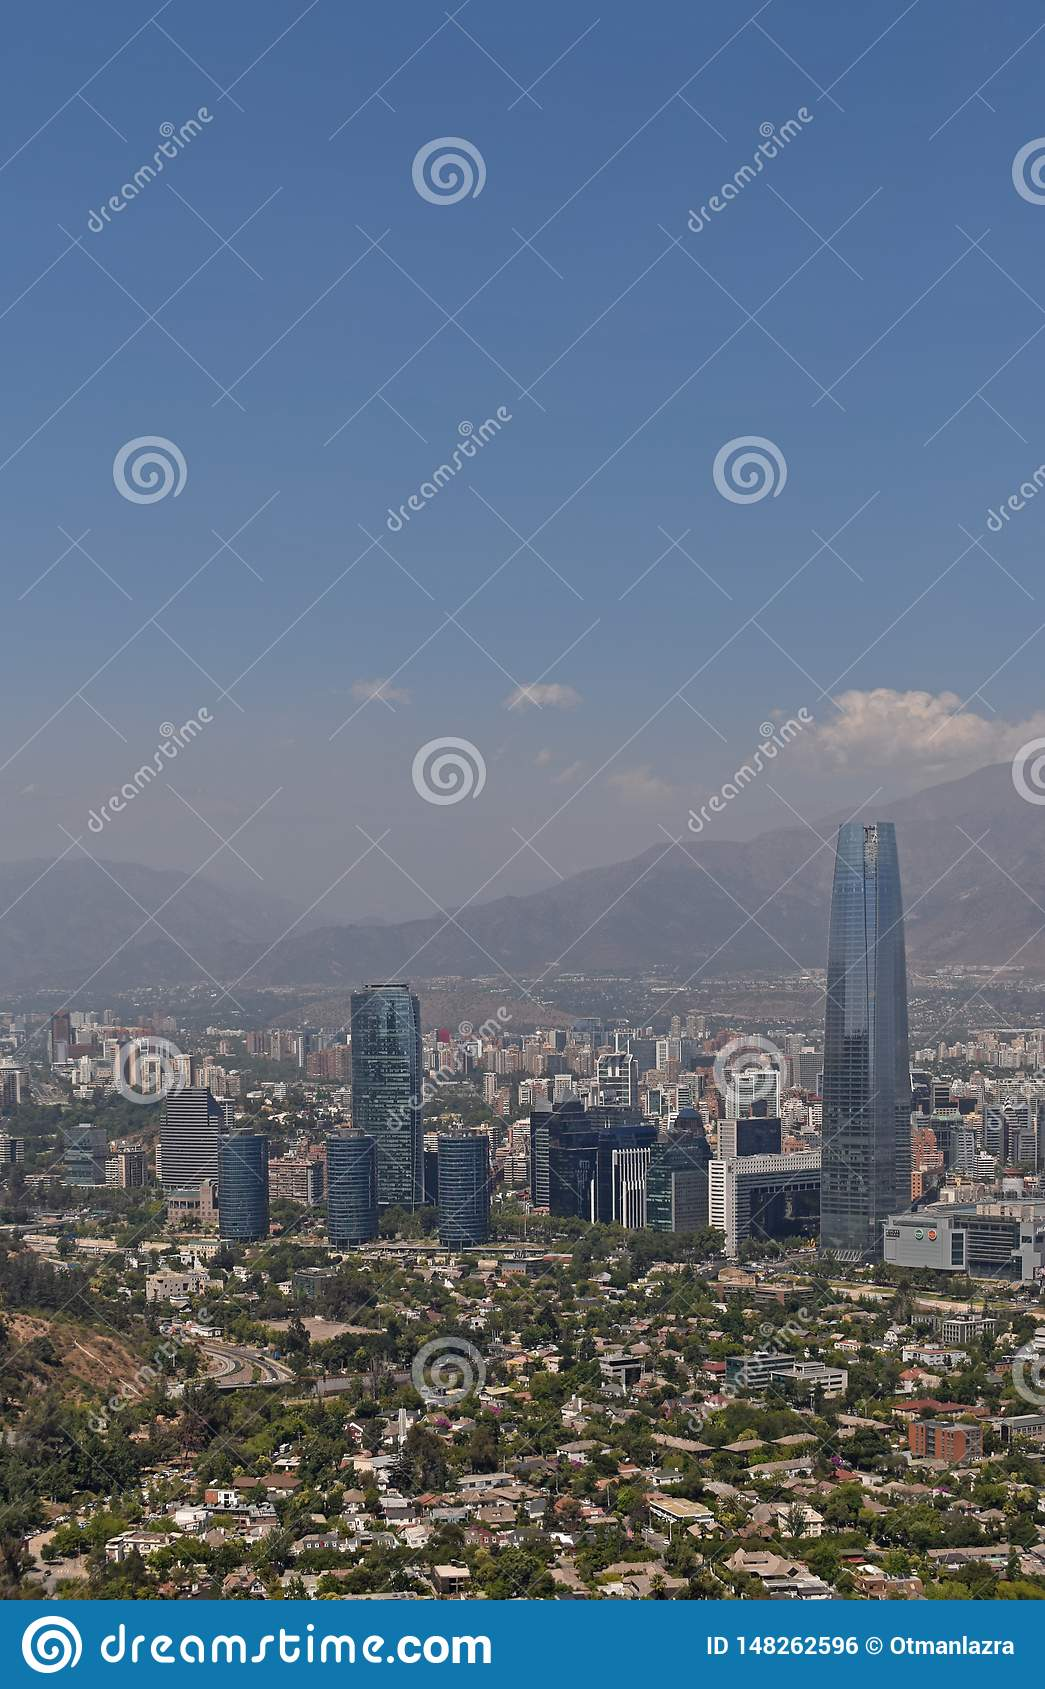 Aerial view of santiago de chile city from san cristobal hill point of view.